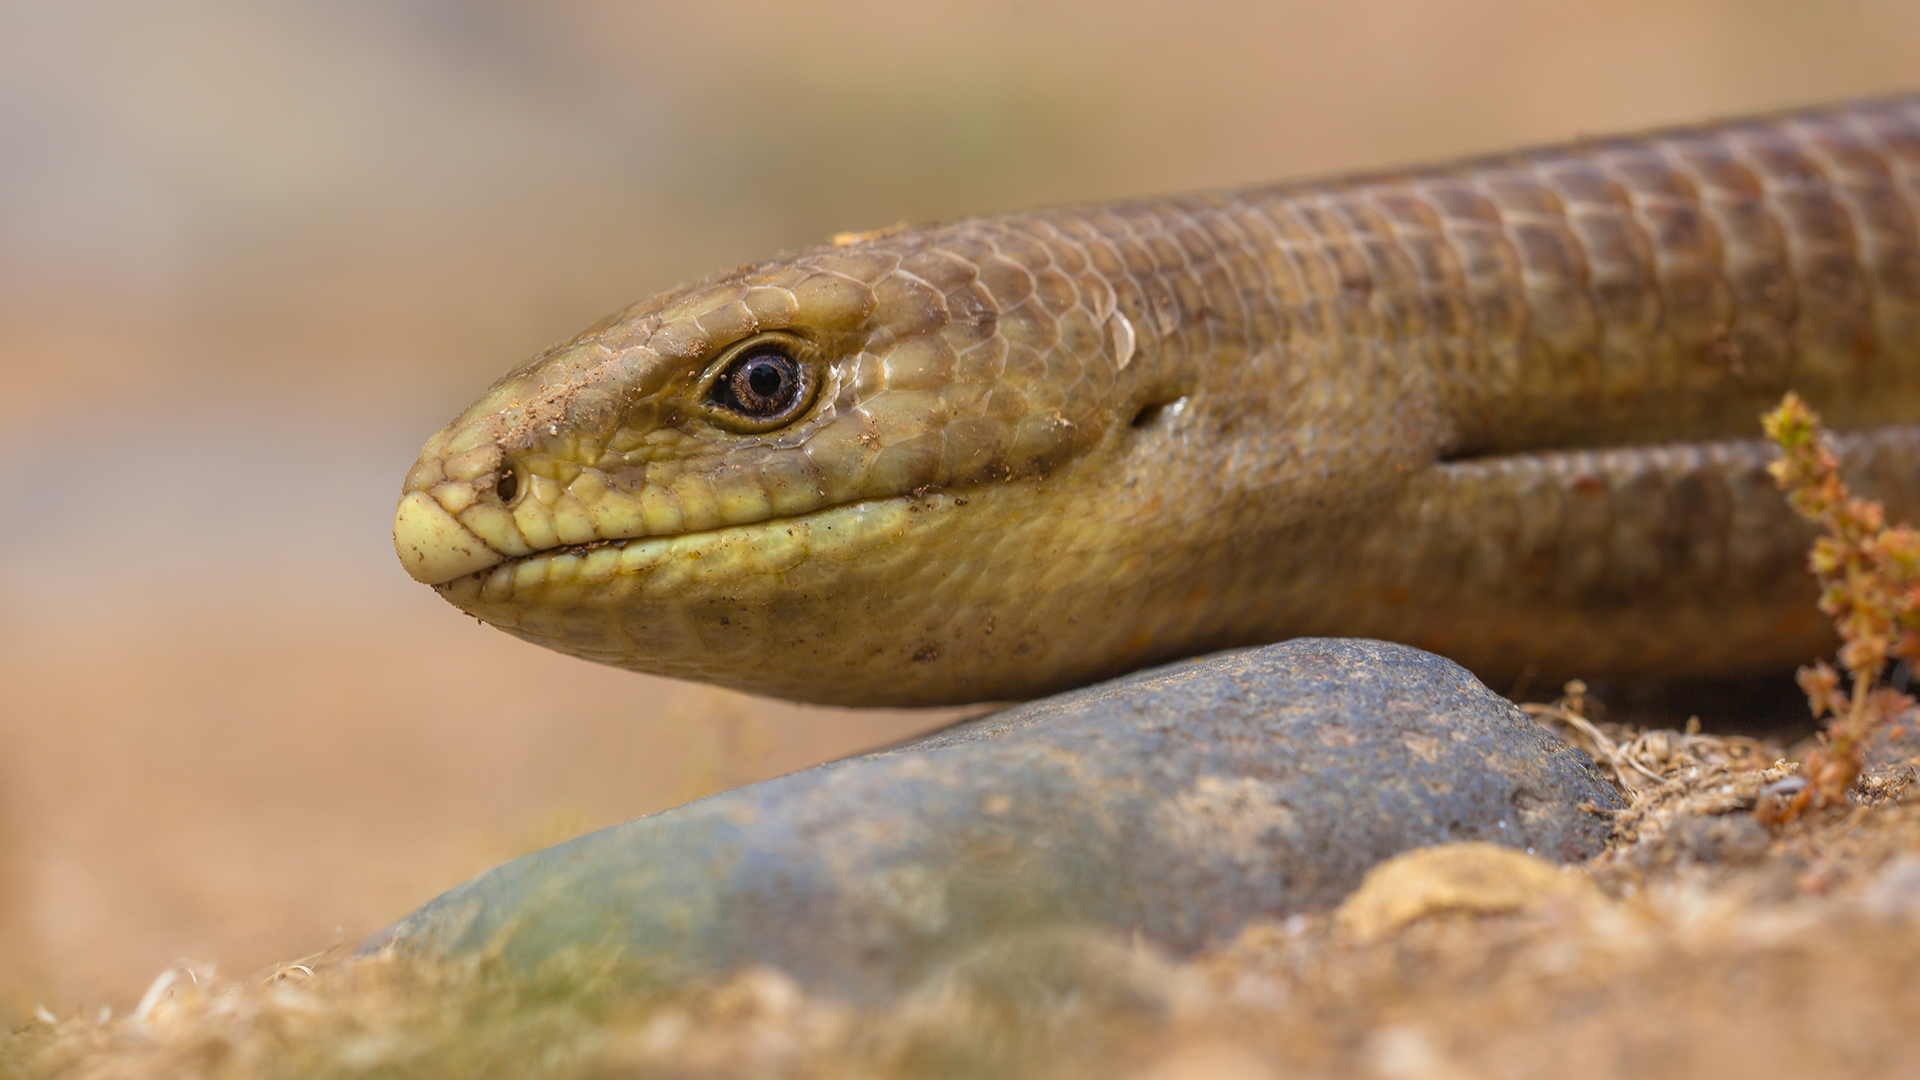 The legless European glass lizard (Pseudopus apodus) was likely a part of the ancient human diet.